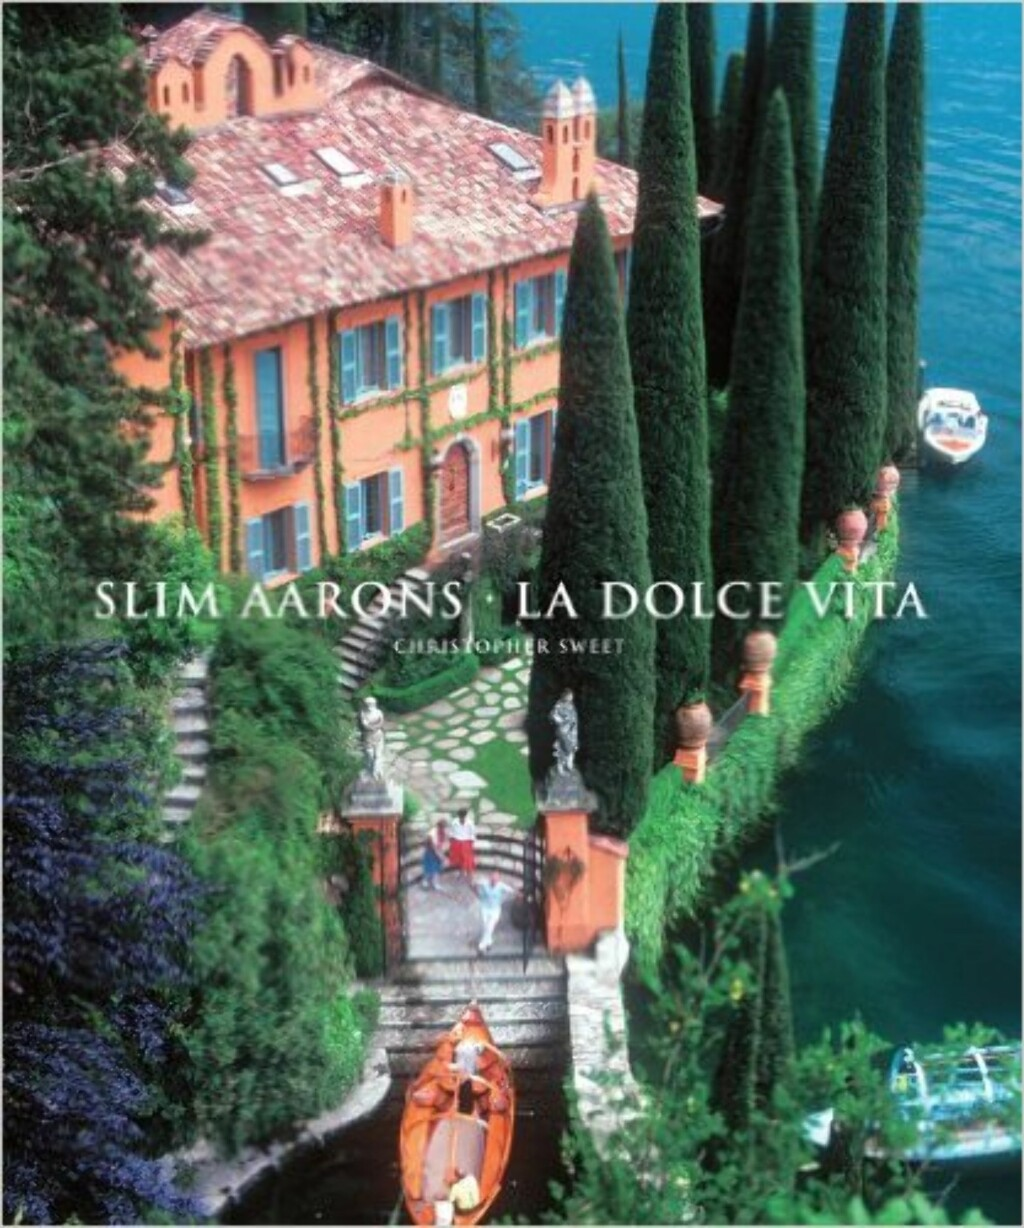 La Dolce Vita via Amazon.com, kr 430.